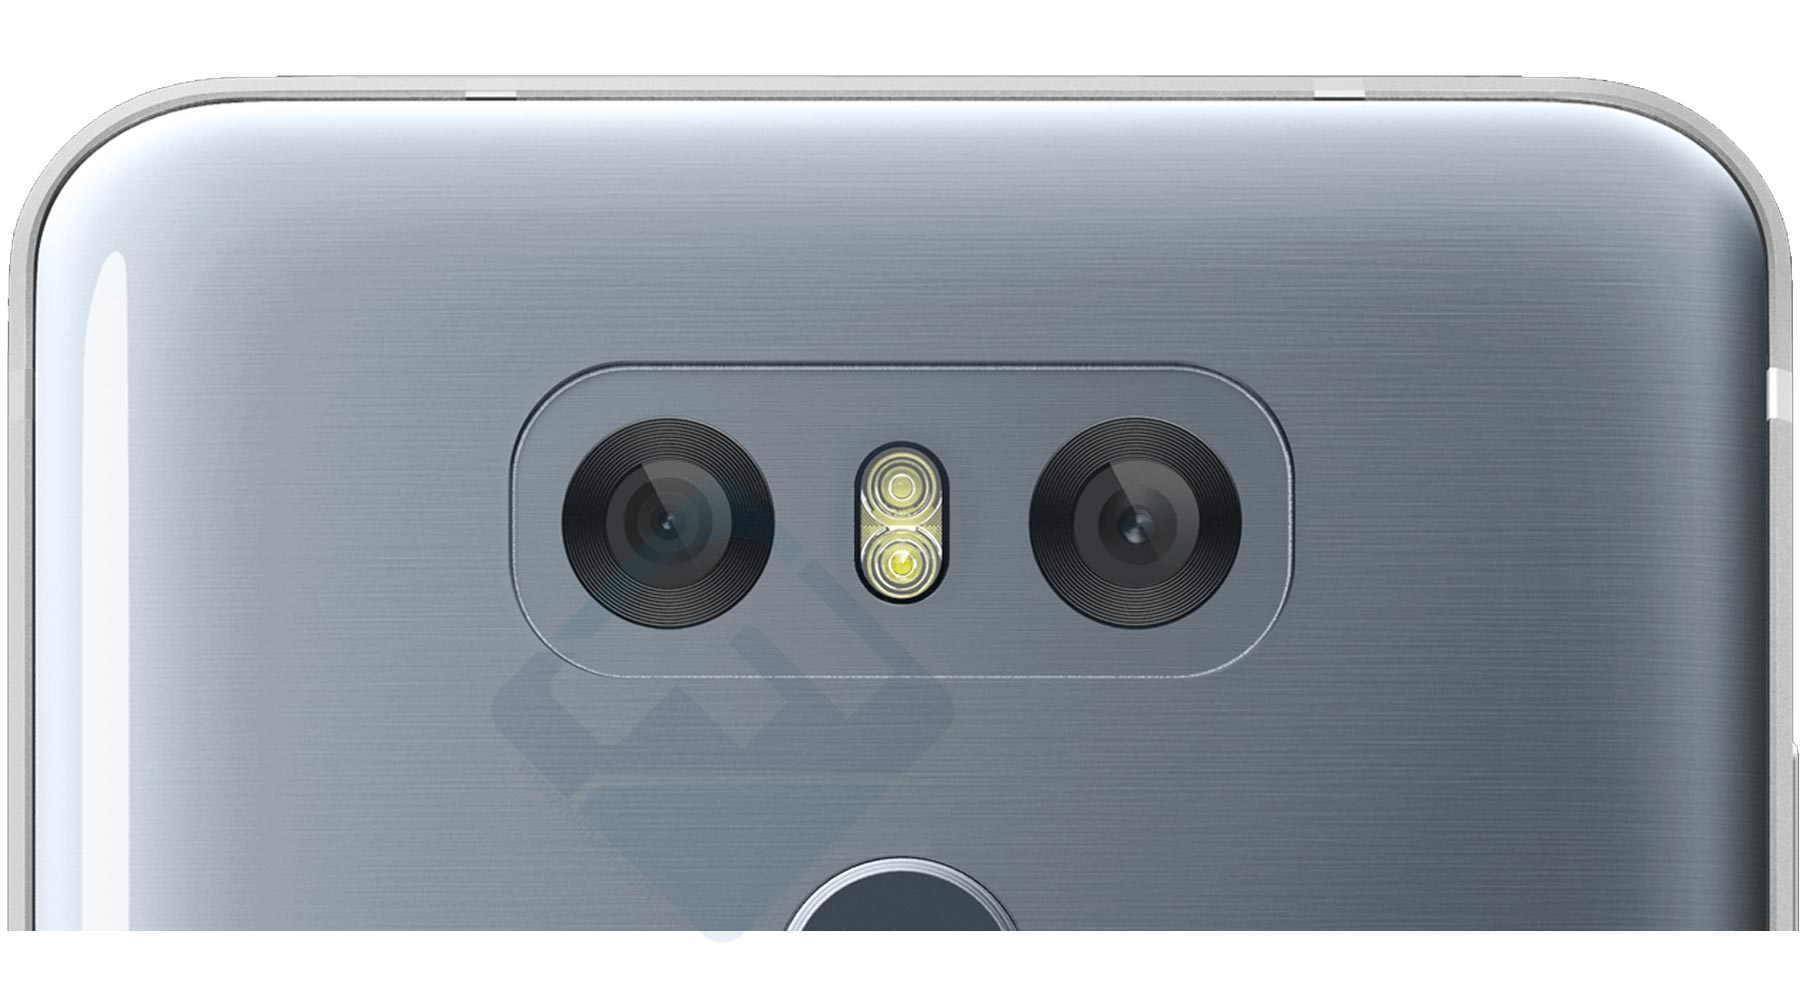 lg-g6-display-size-battery-dubai-best-price-fingerprint-faceprint-dual-camera